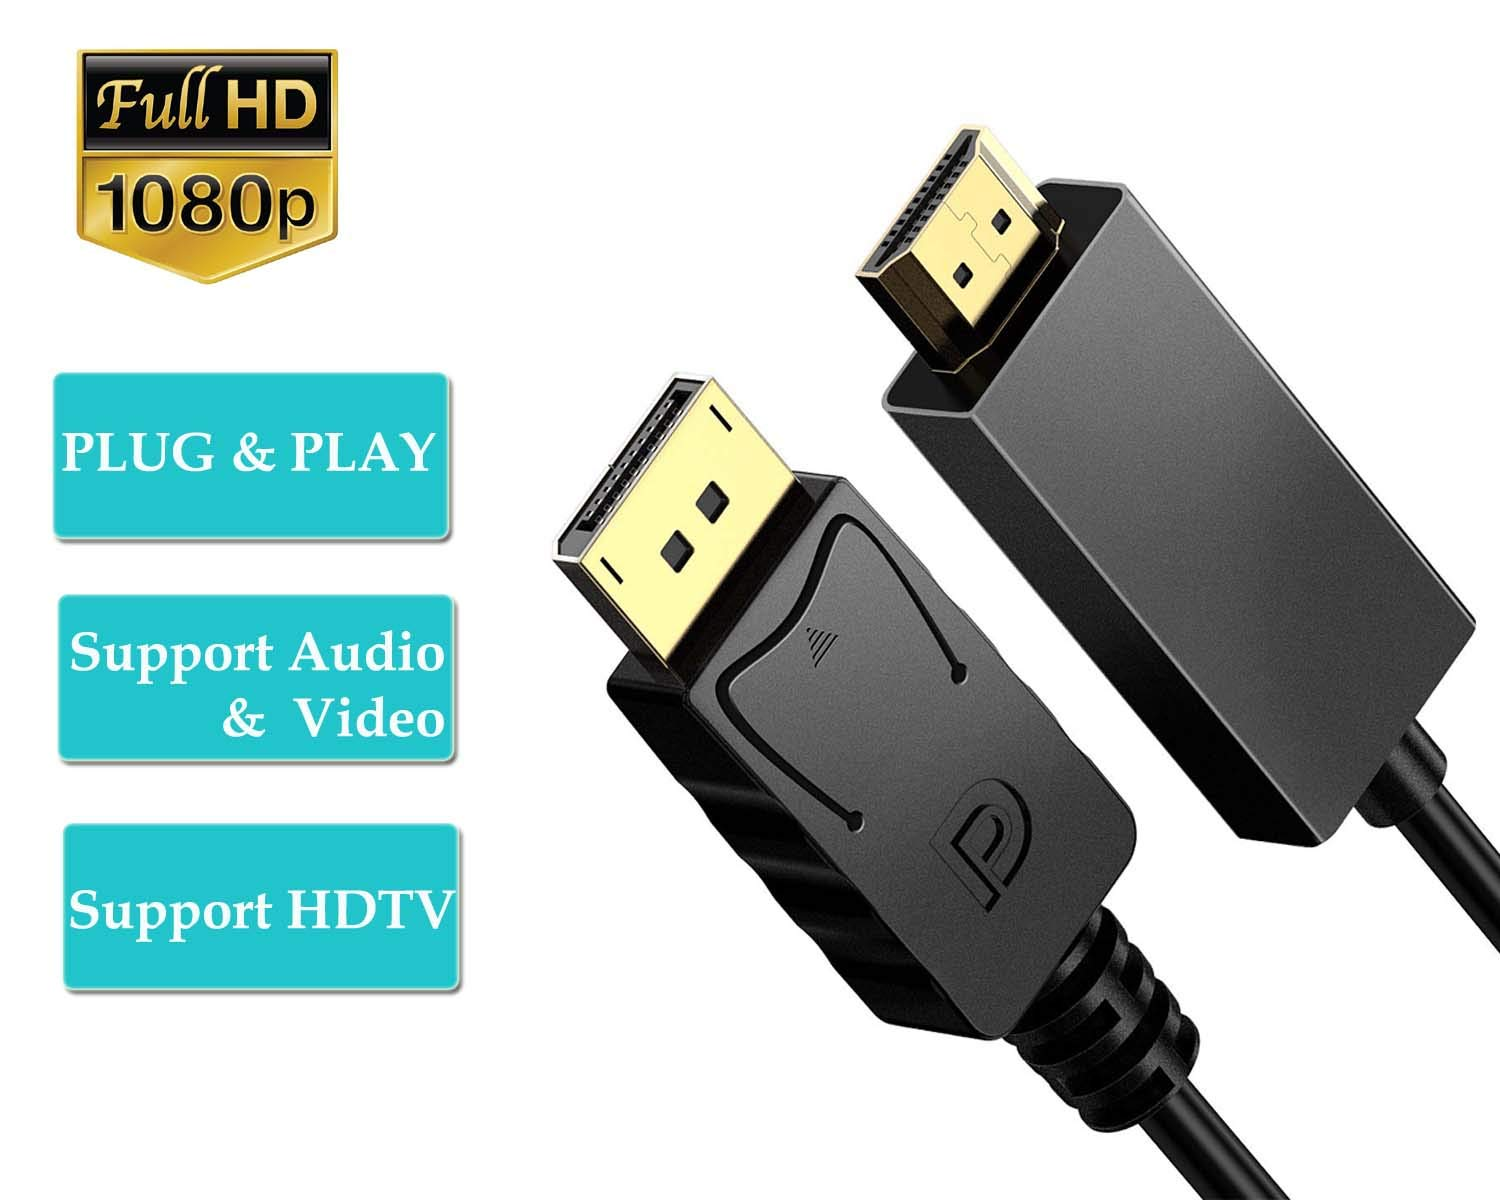 Dell HP Benfei Gold-Plated 4K DP to HDMI Cable Compatible for Lenovo Displayport to HDMI Cable 0.9 Meter ASUS